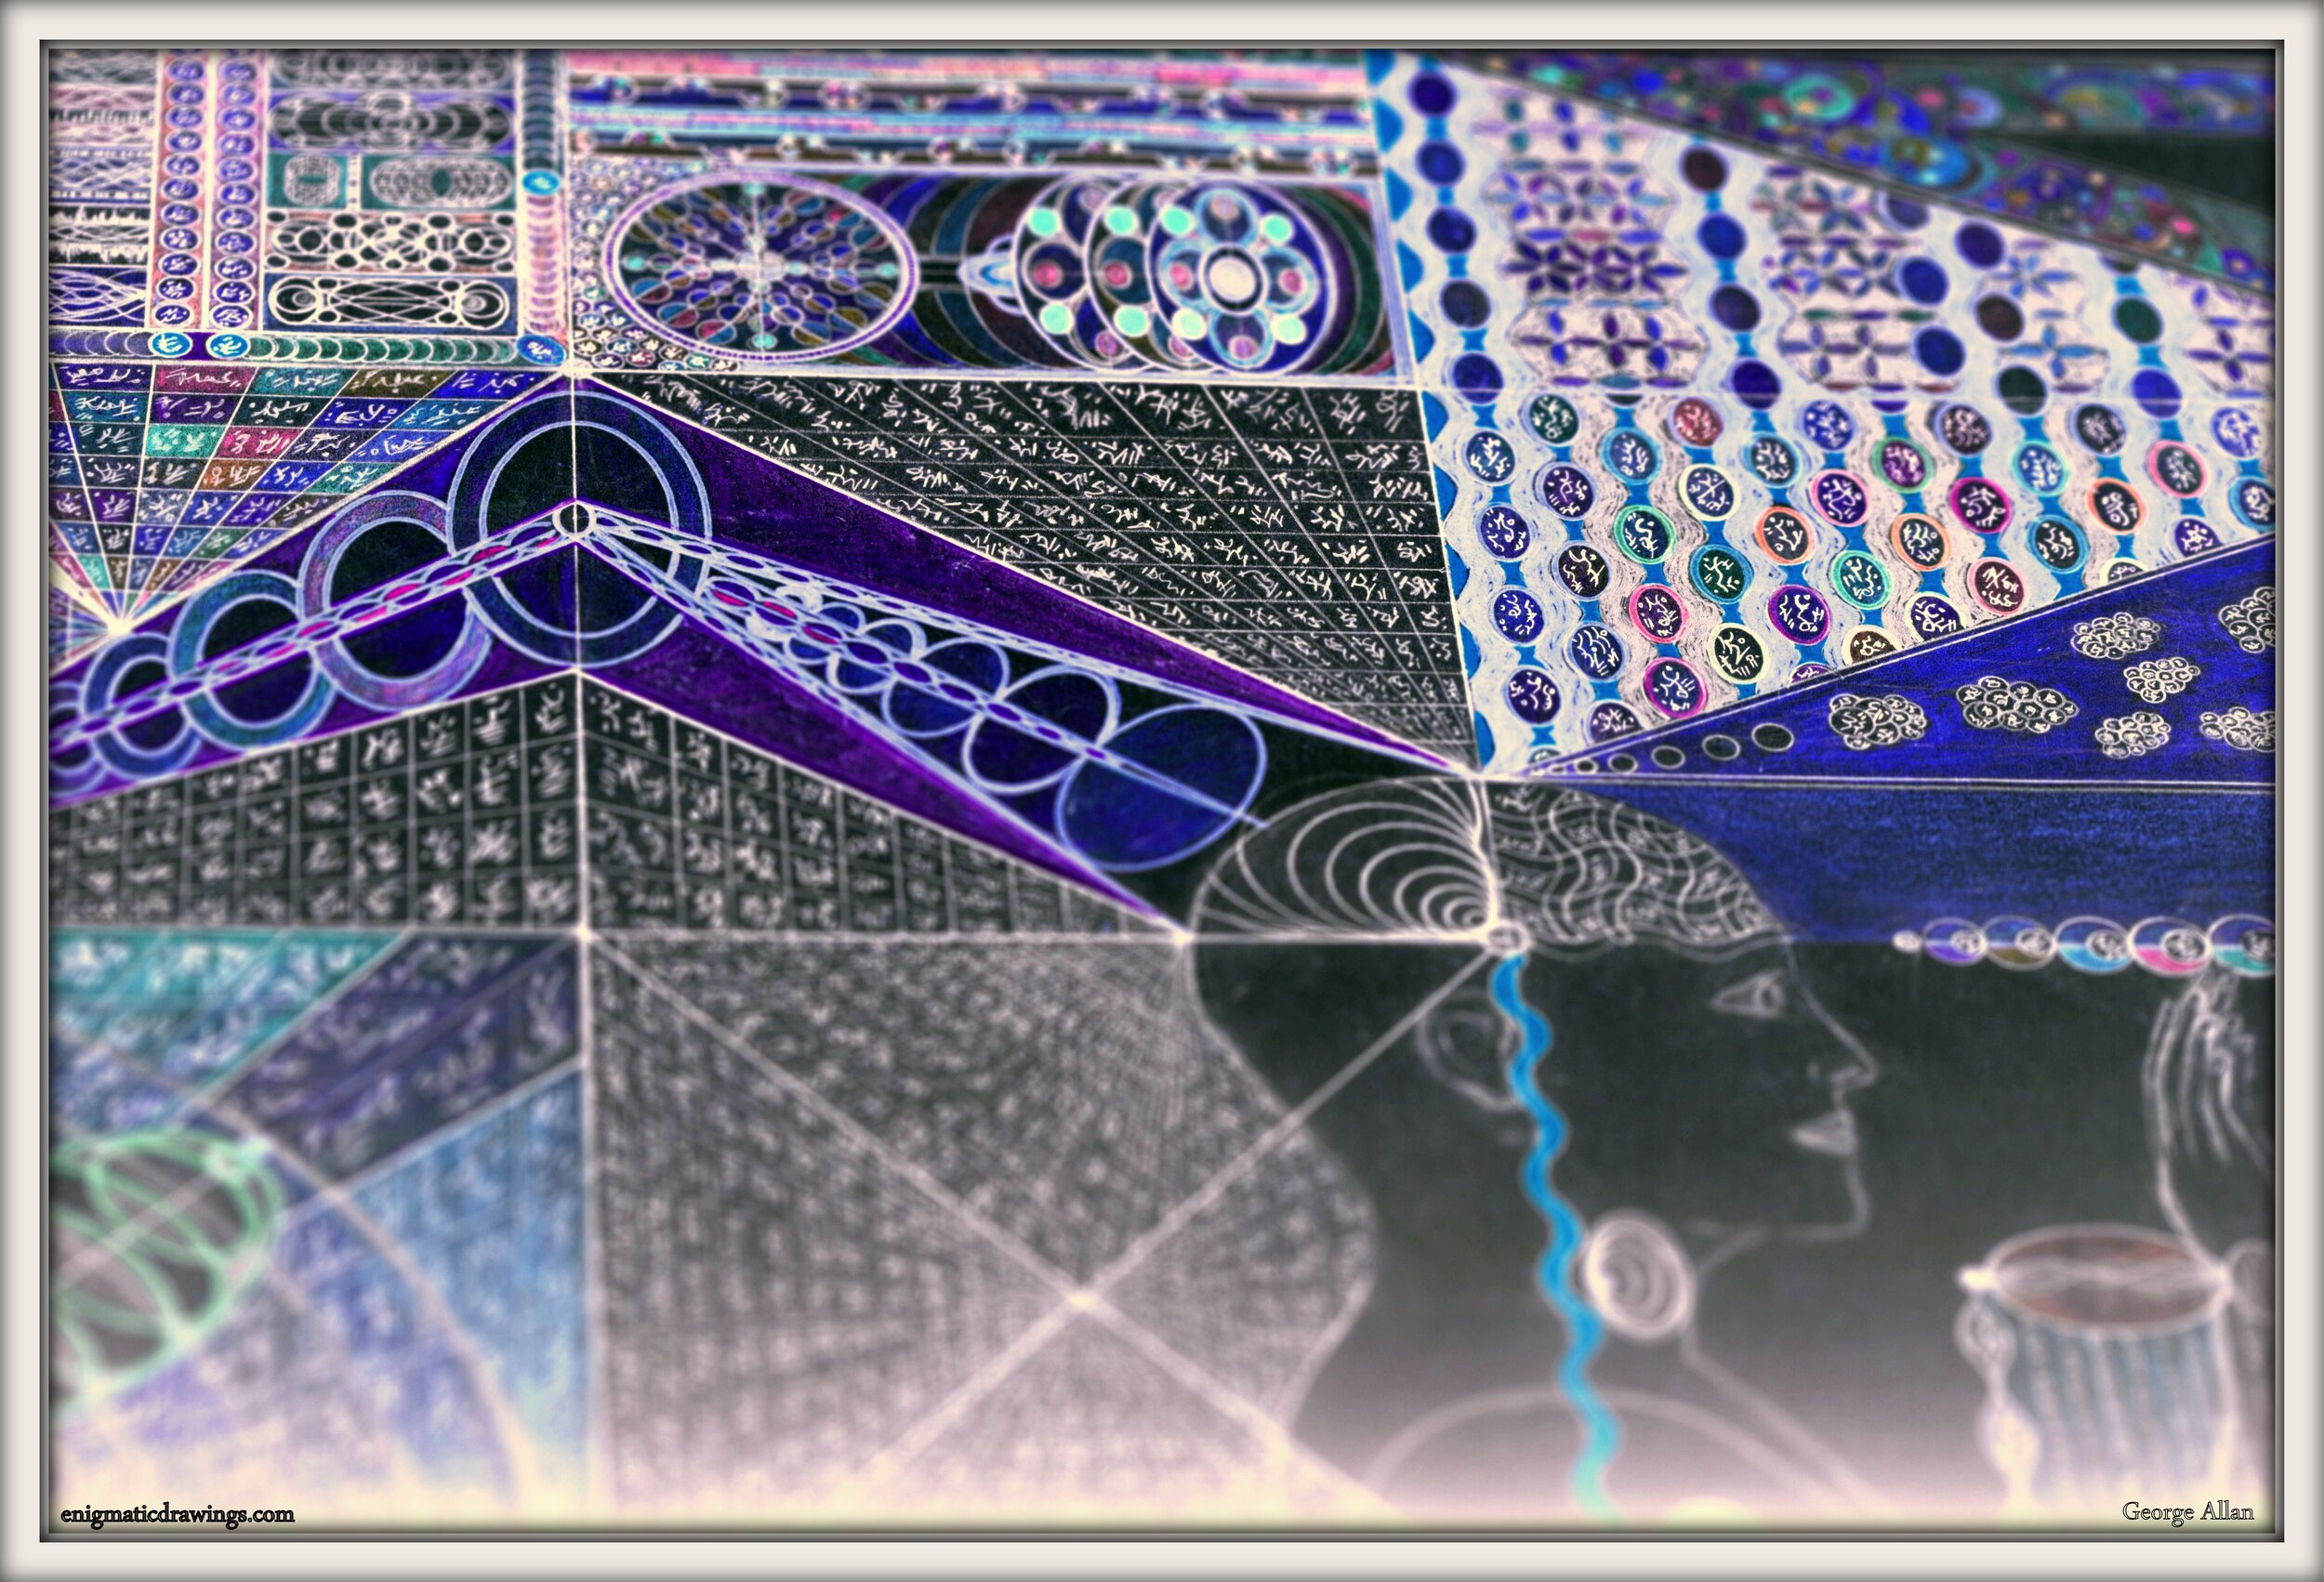 enigmaticdrawings.com.Thank you Pic.F-S.jpg